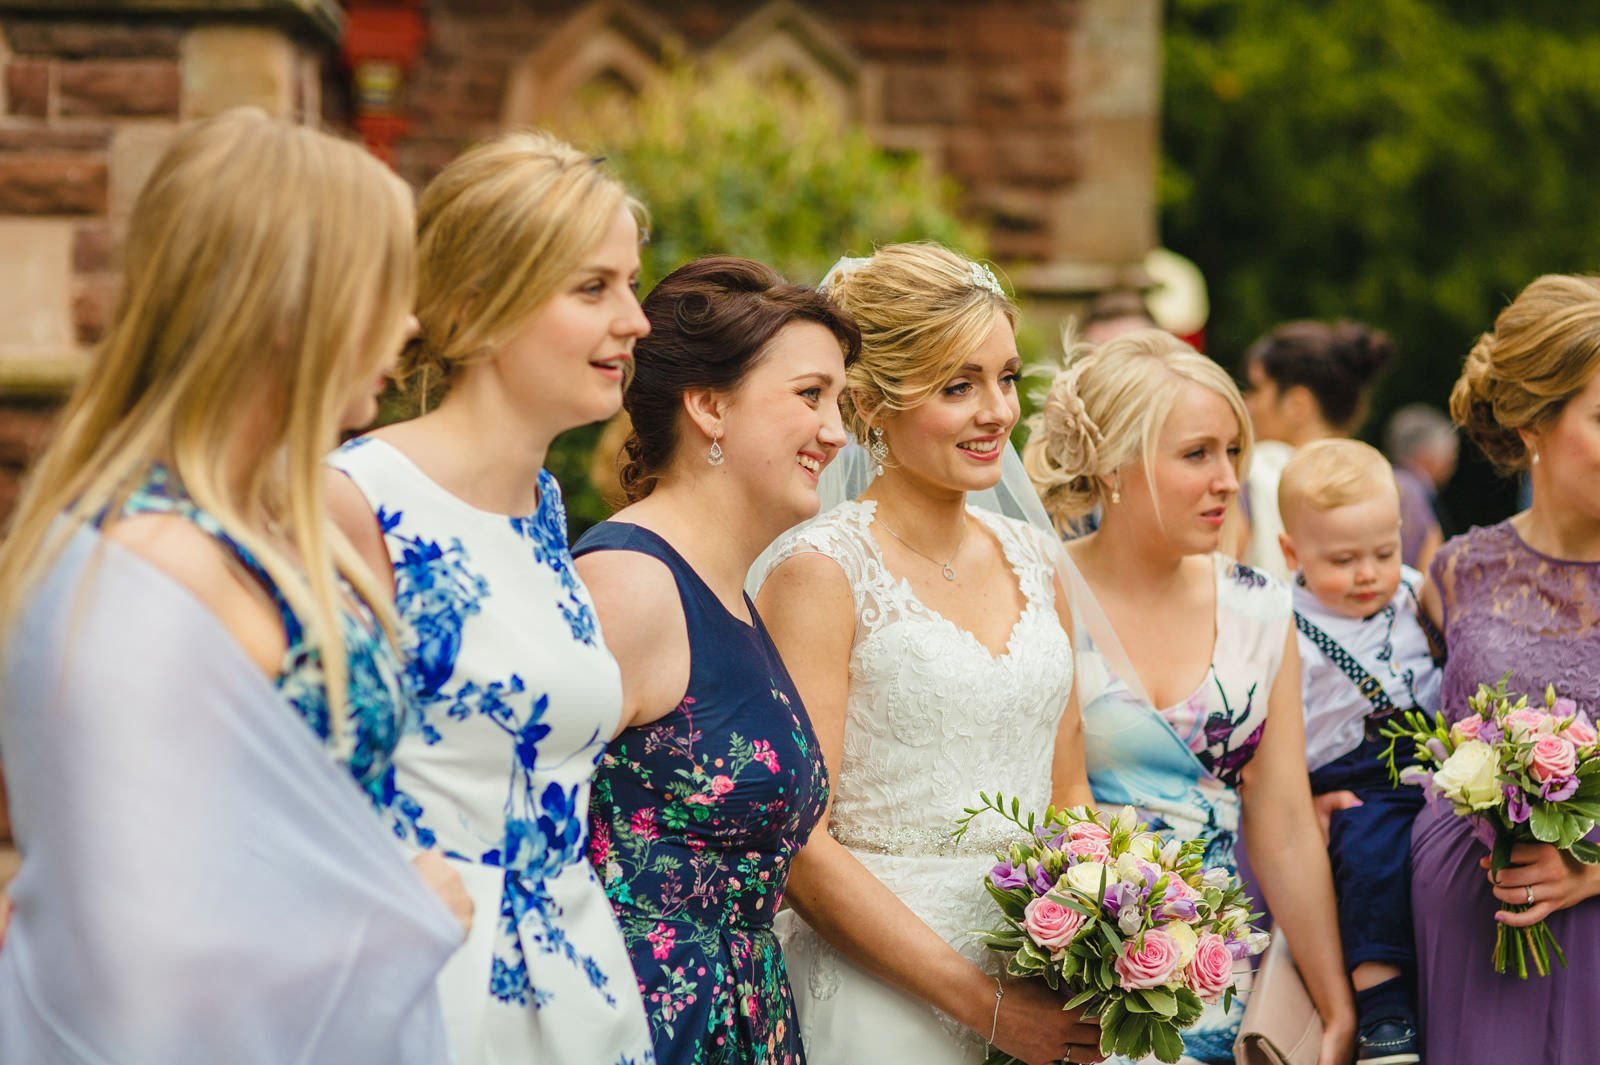 millers of netley wedding 31 - Millers Of Netley wedding, Dorrington, Shrewsbury | Emma + Ben